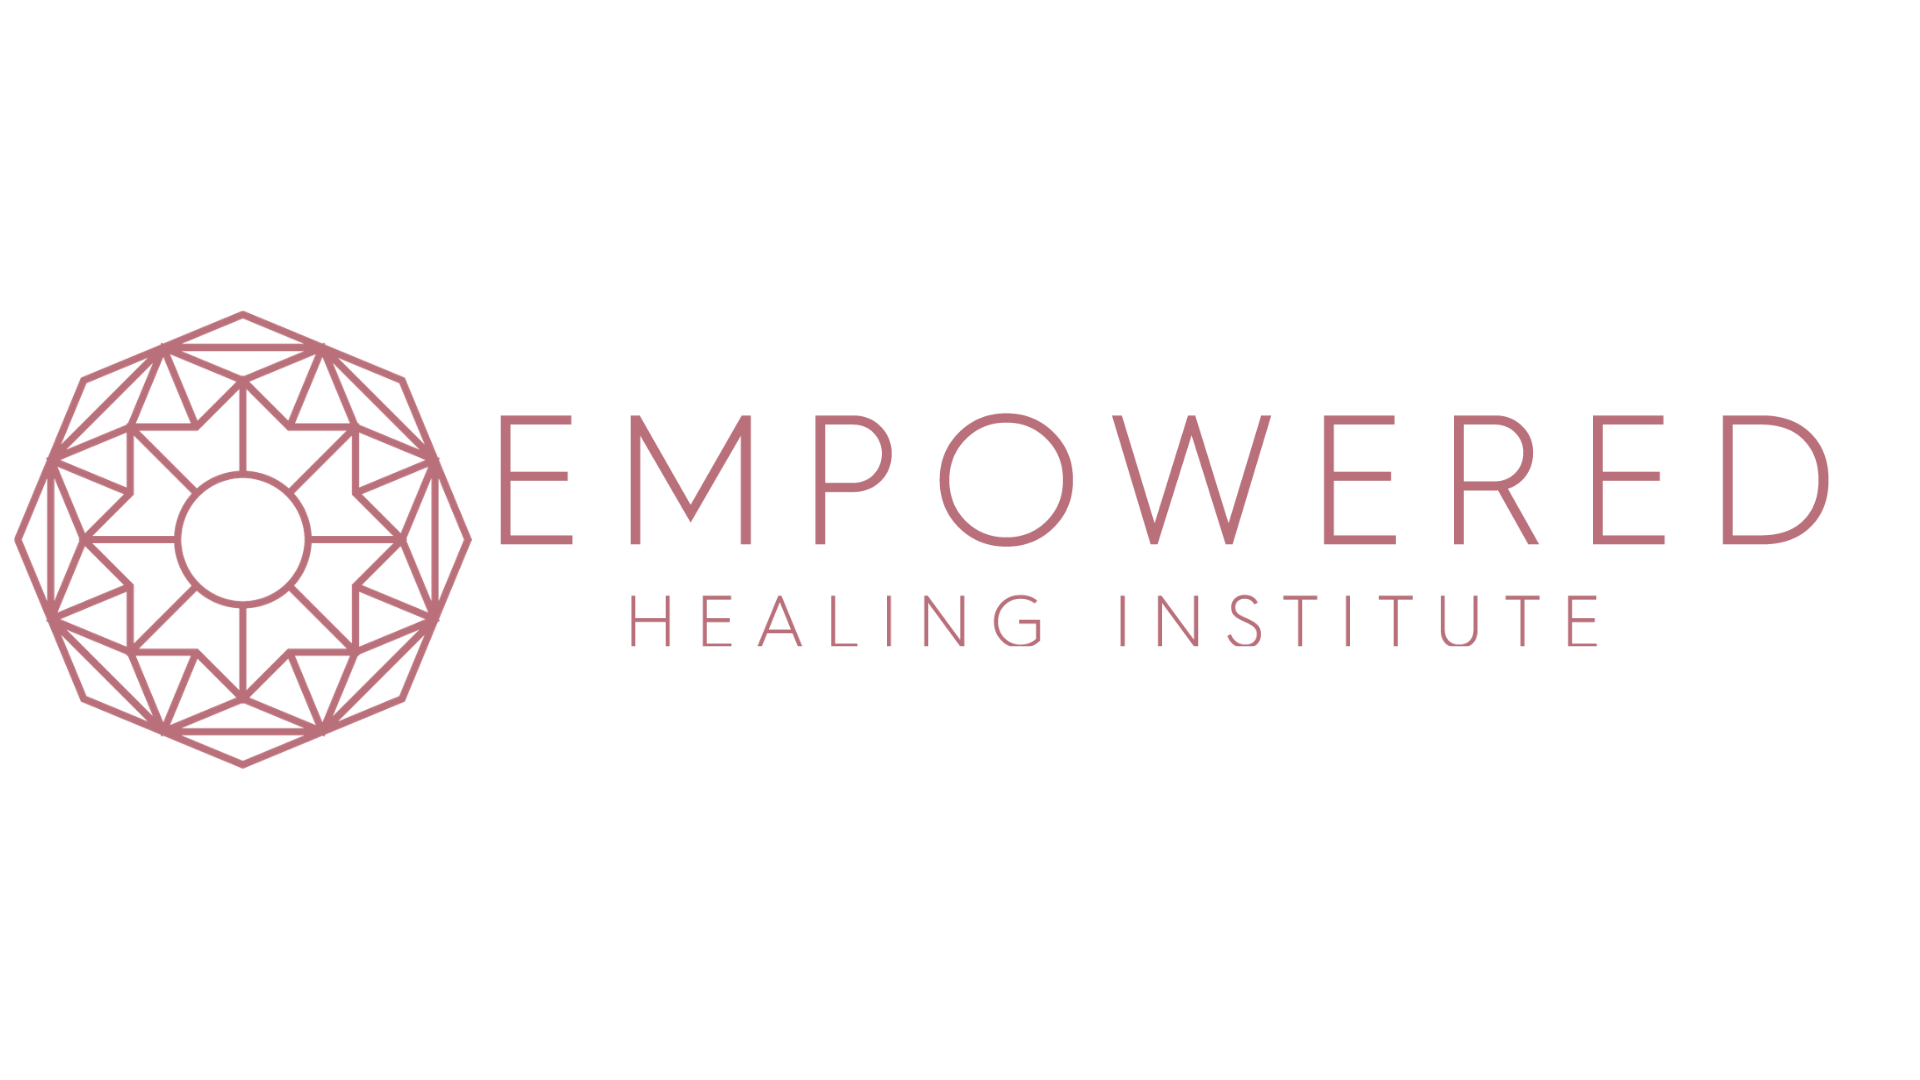 Empowered Healing Institute